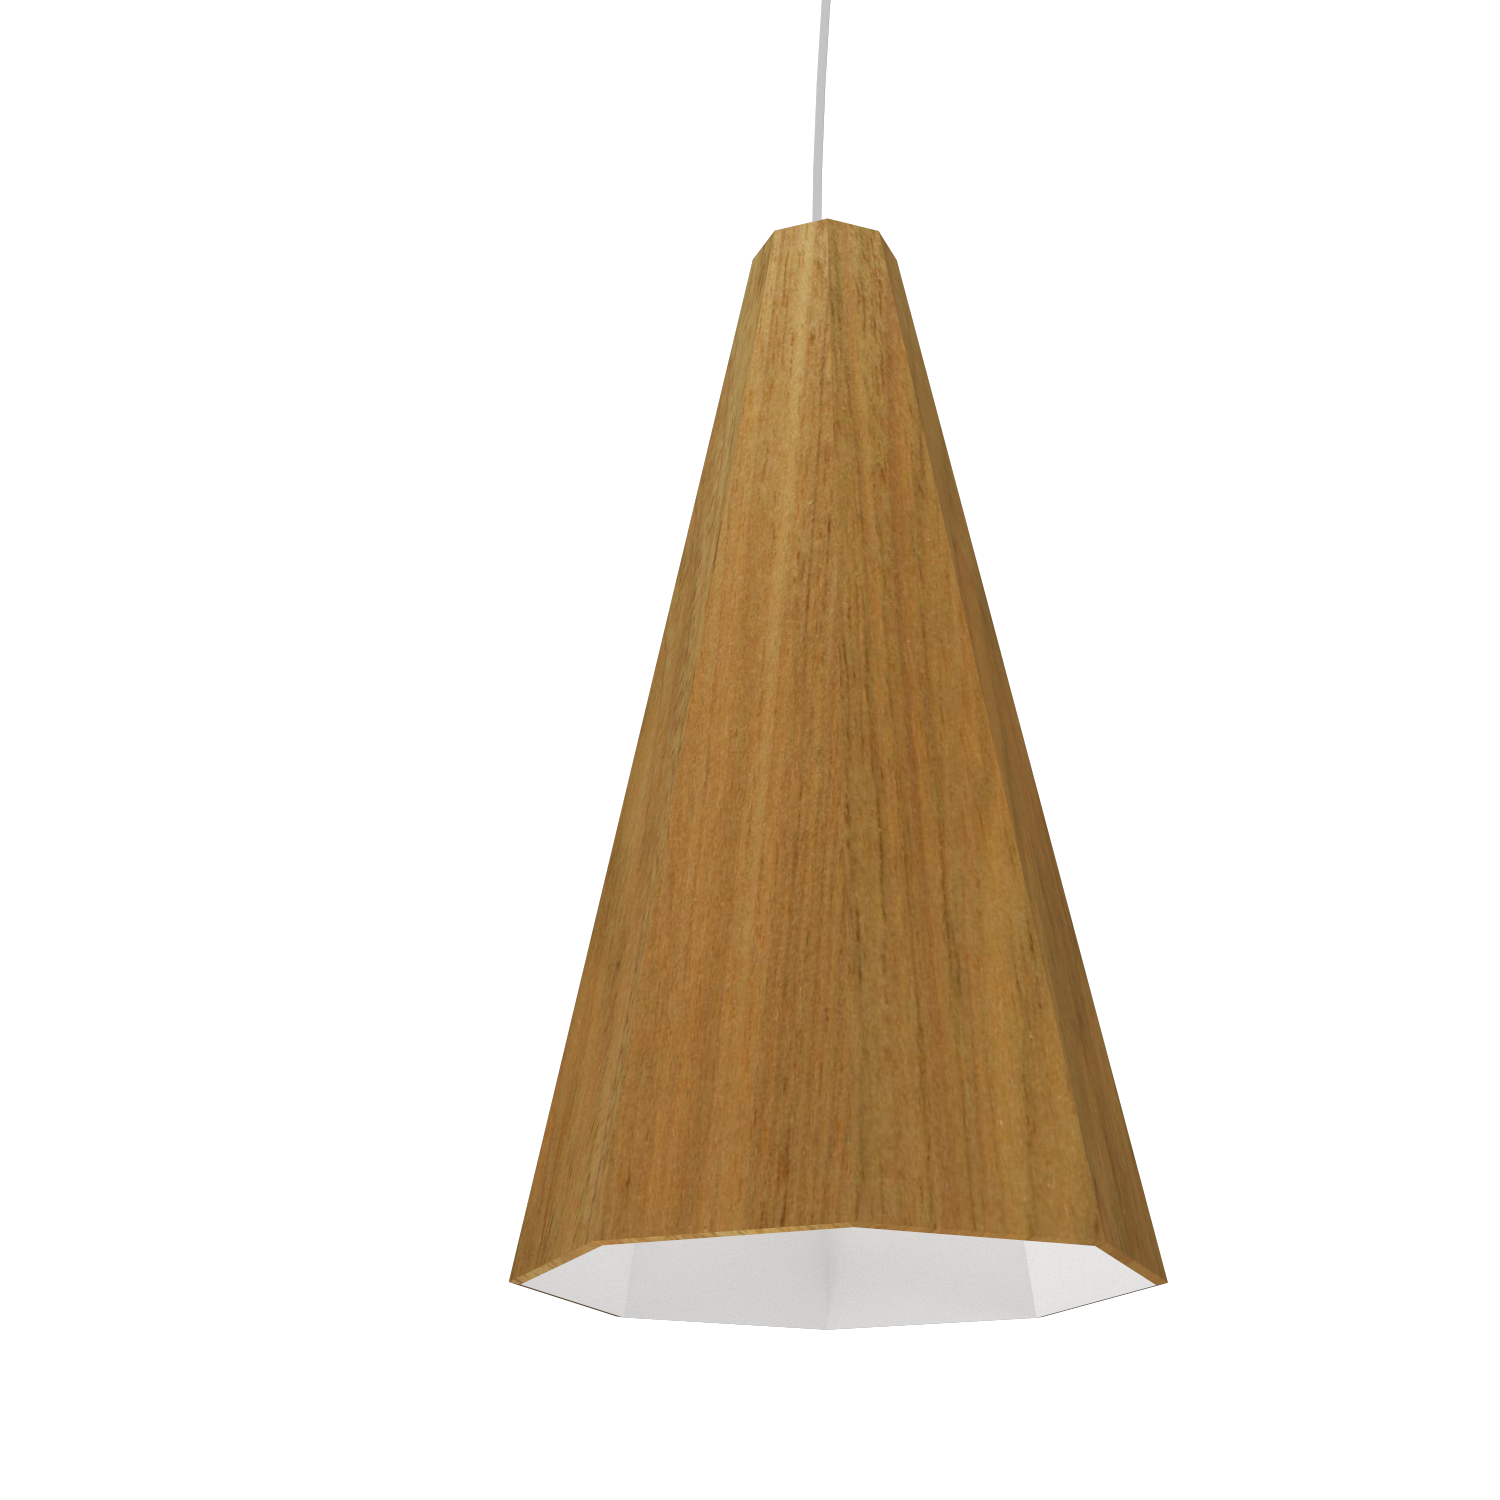 Pendant Lamp Accord Facetado 1231 - Facetada Line Accord Lighting | 09. Louro Freijó